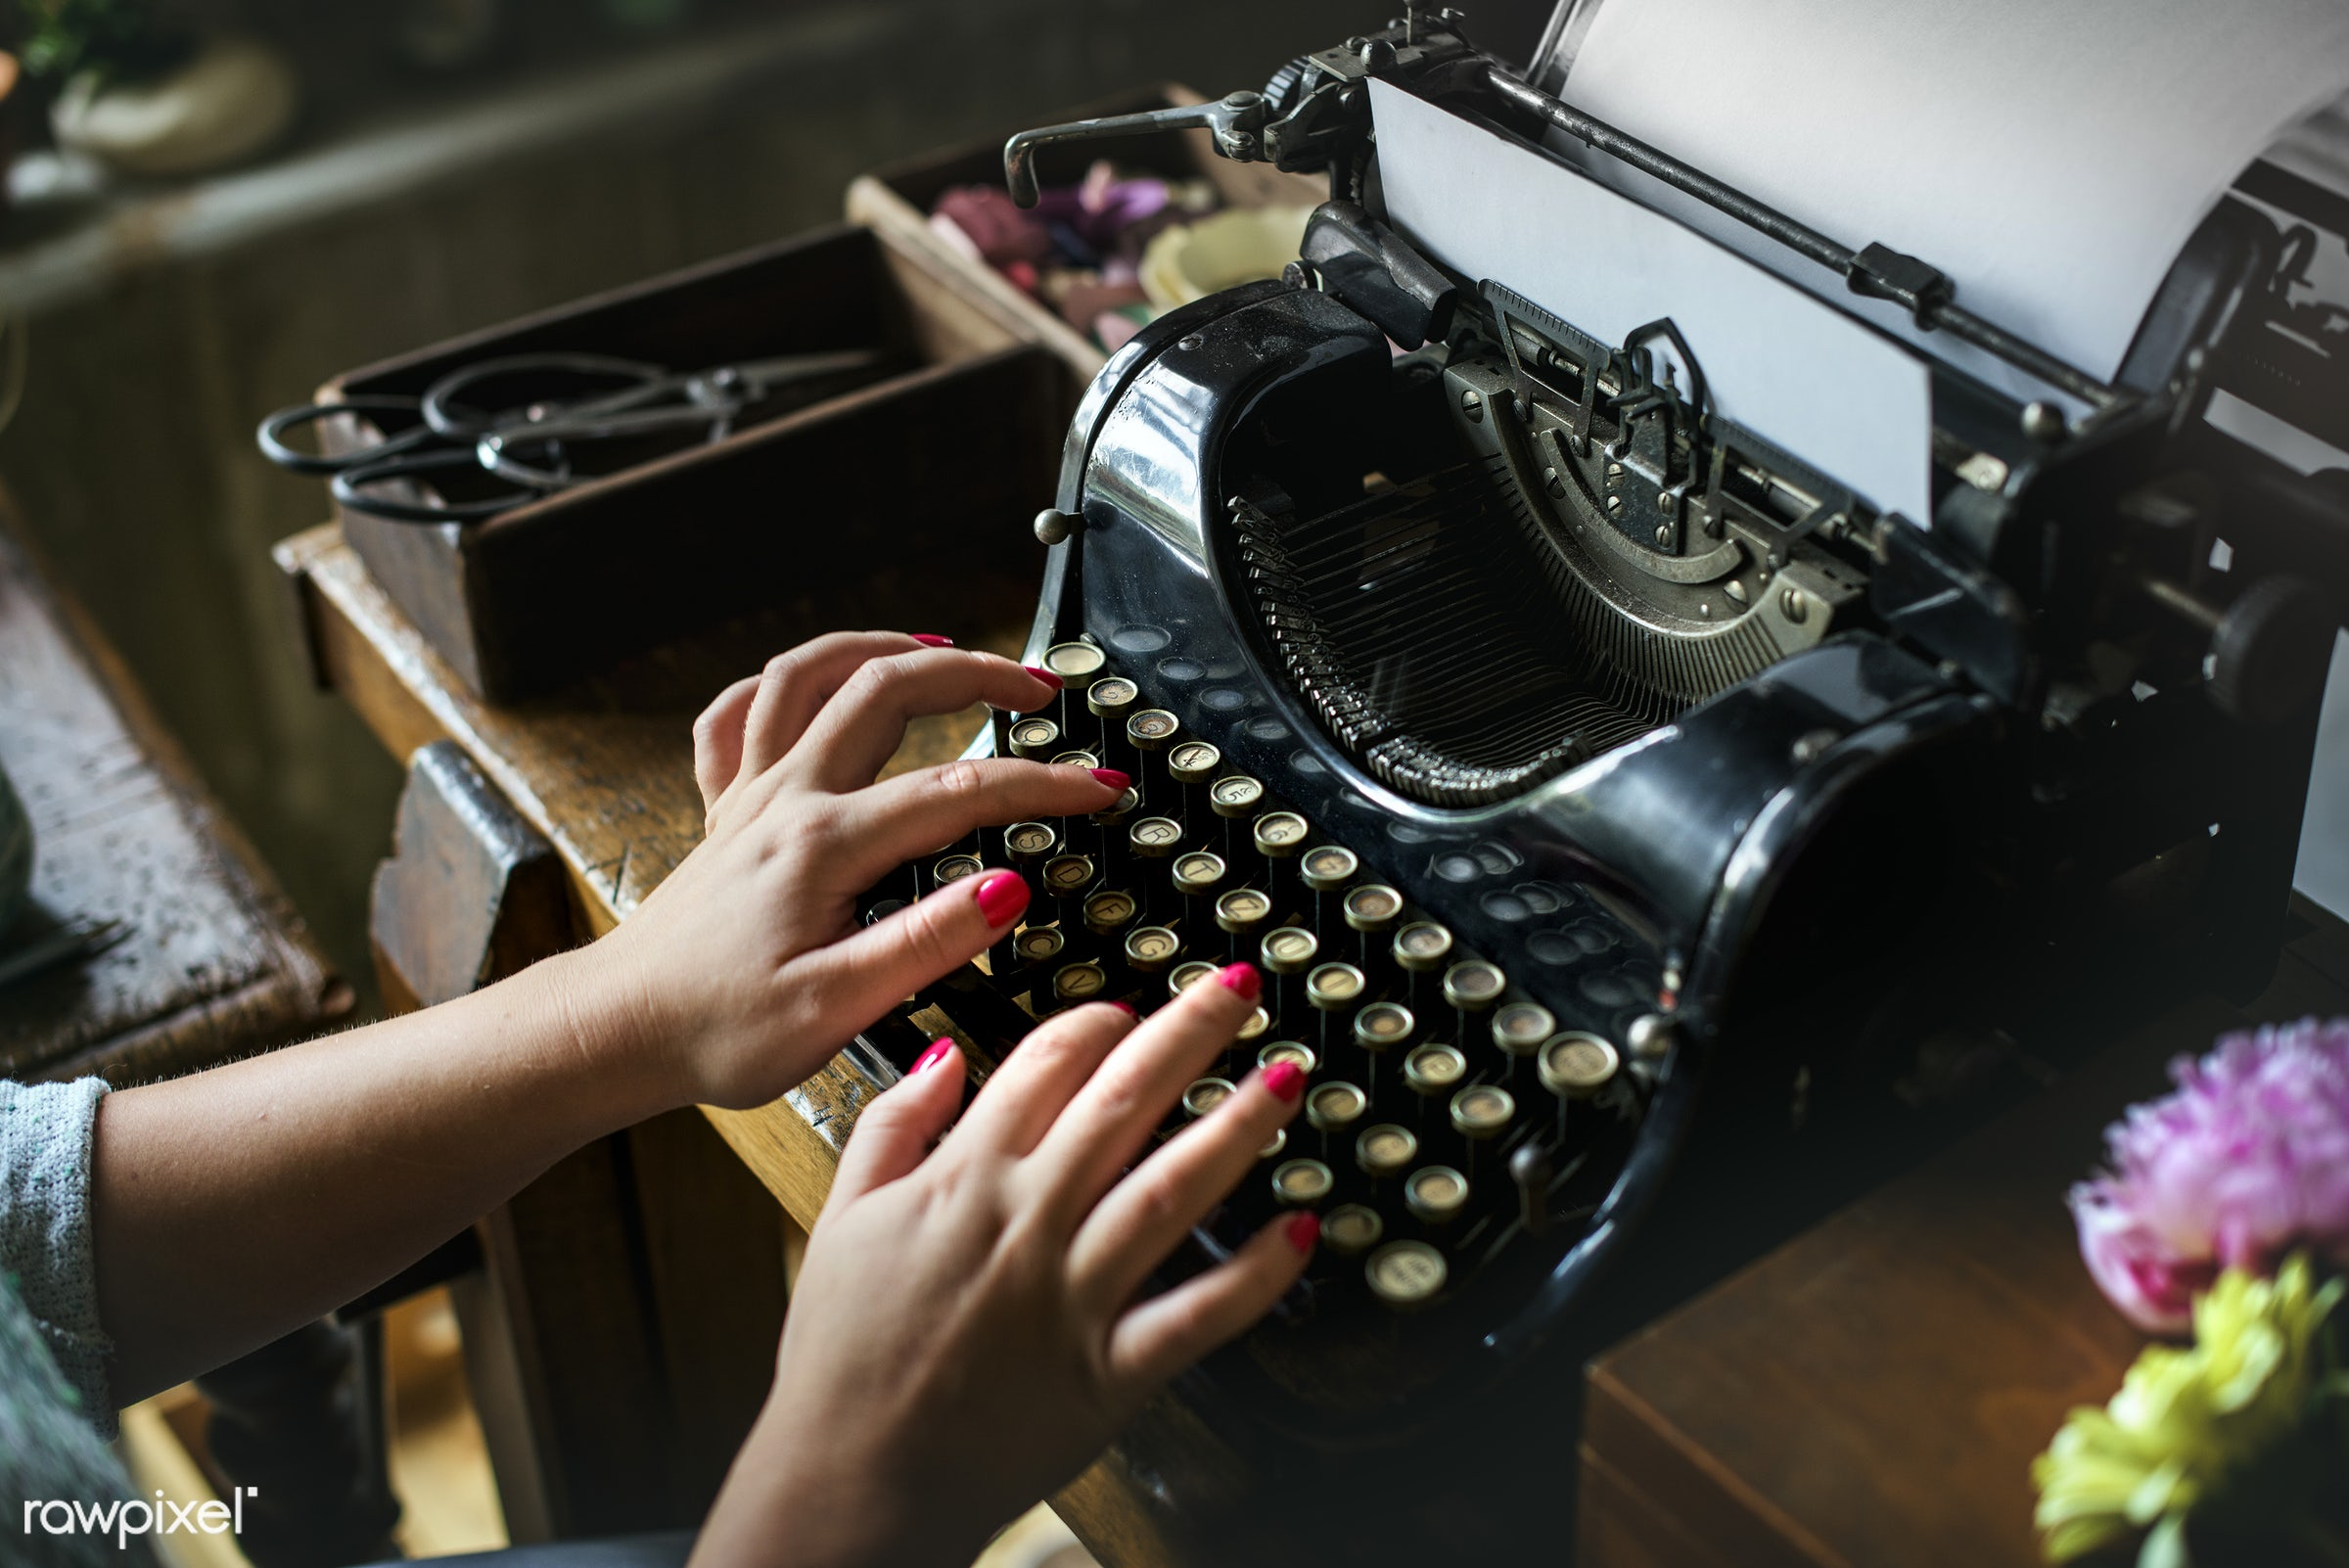 paper, tool, retro, equipment, hands, typewriter, woman, typing, working, objects, closeup, classic, flower, journalist,...